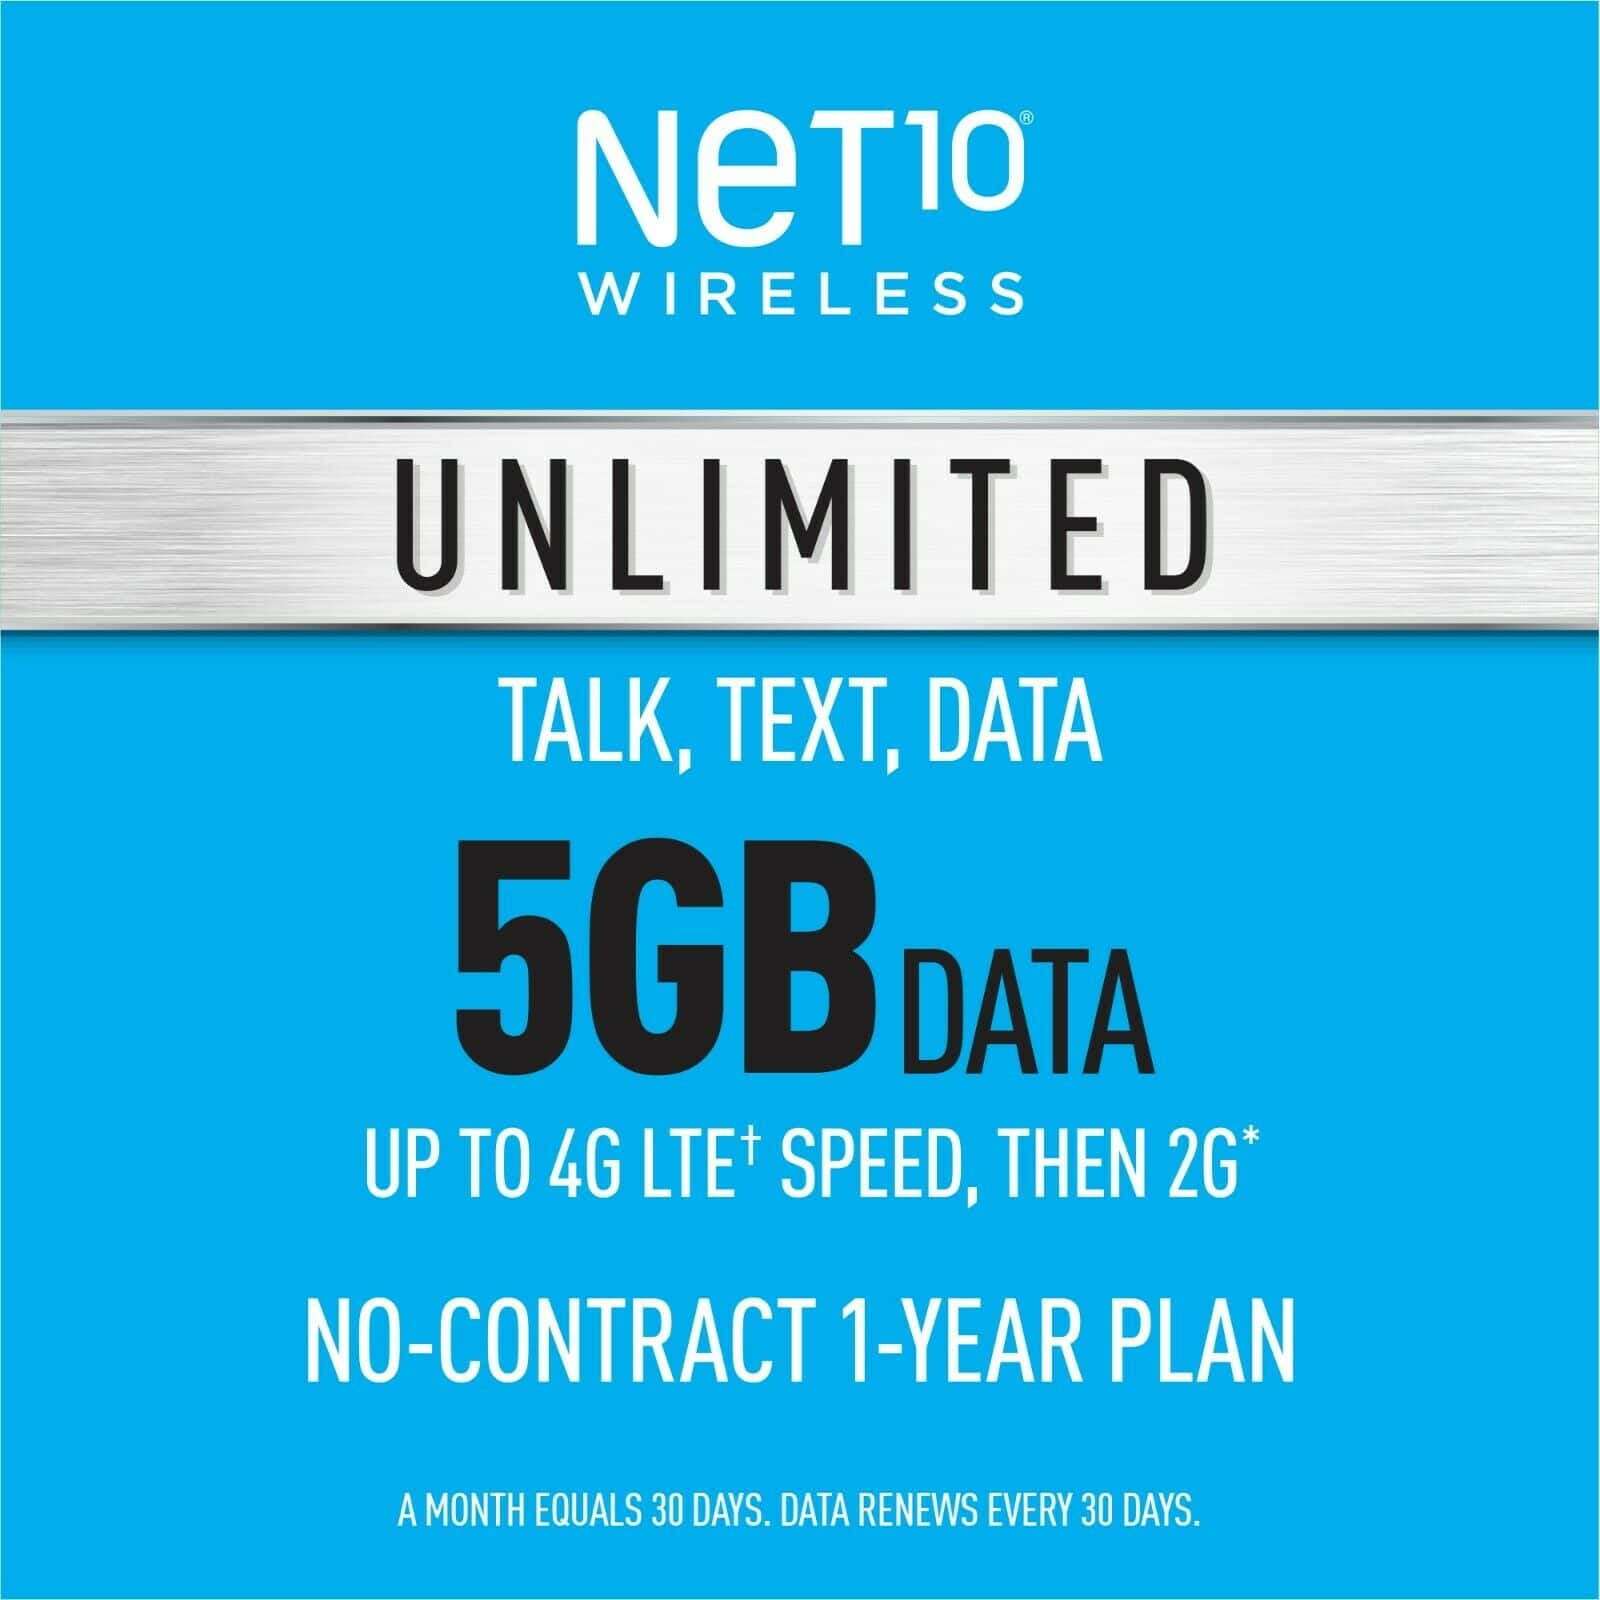 """Net10 Prepaid Wireless Phone ANNUAL Plan with three SIM cards - Unlimited Talk & Text 5GB per Month for $159.99 after 20% off code """"INSTANT20"""" at eBay"""